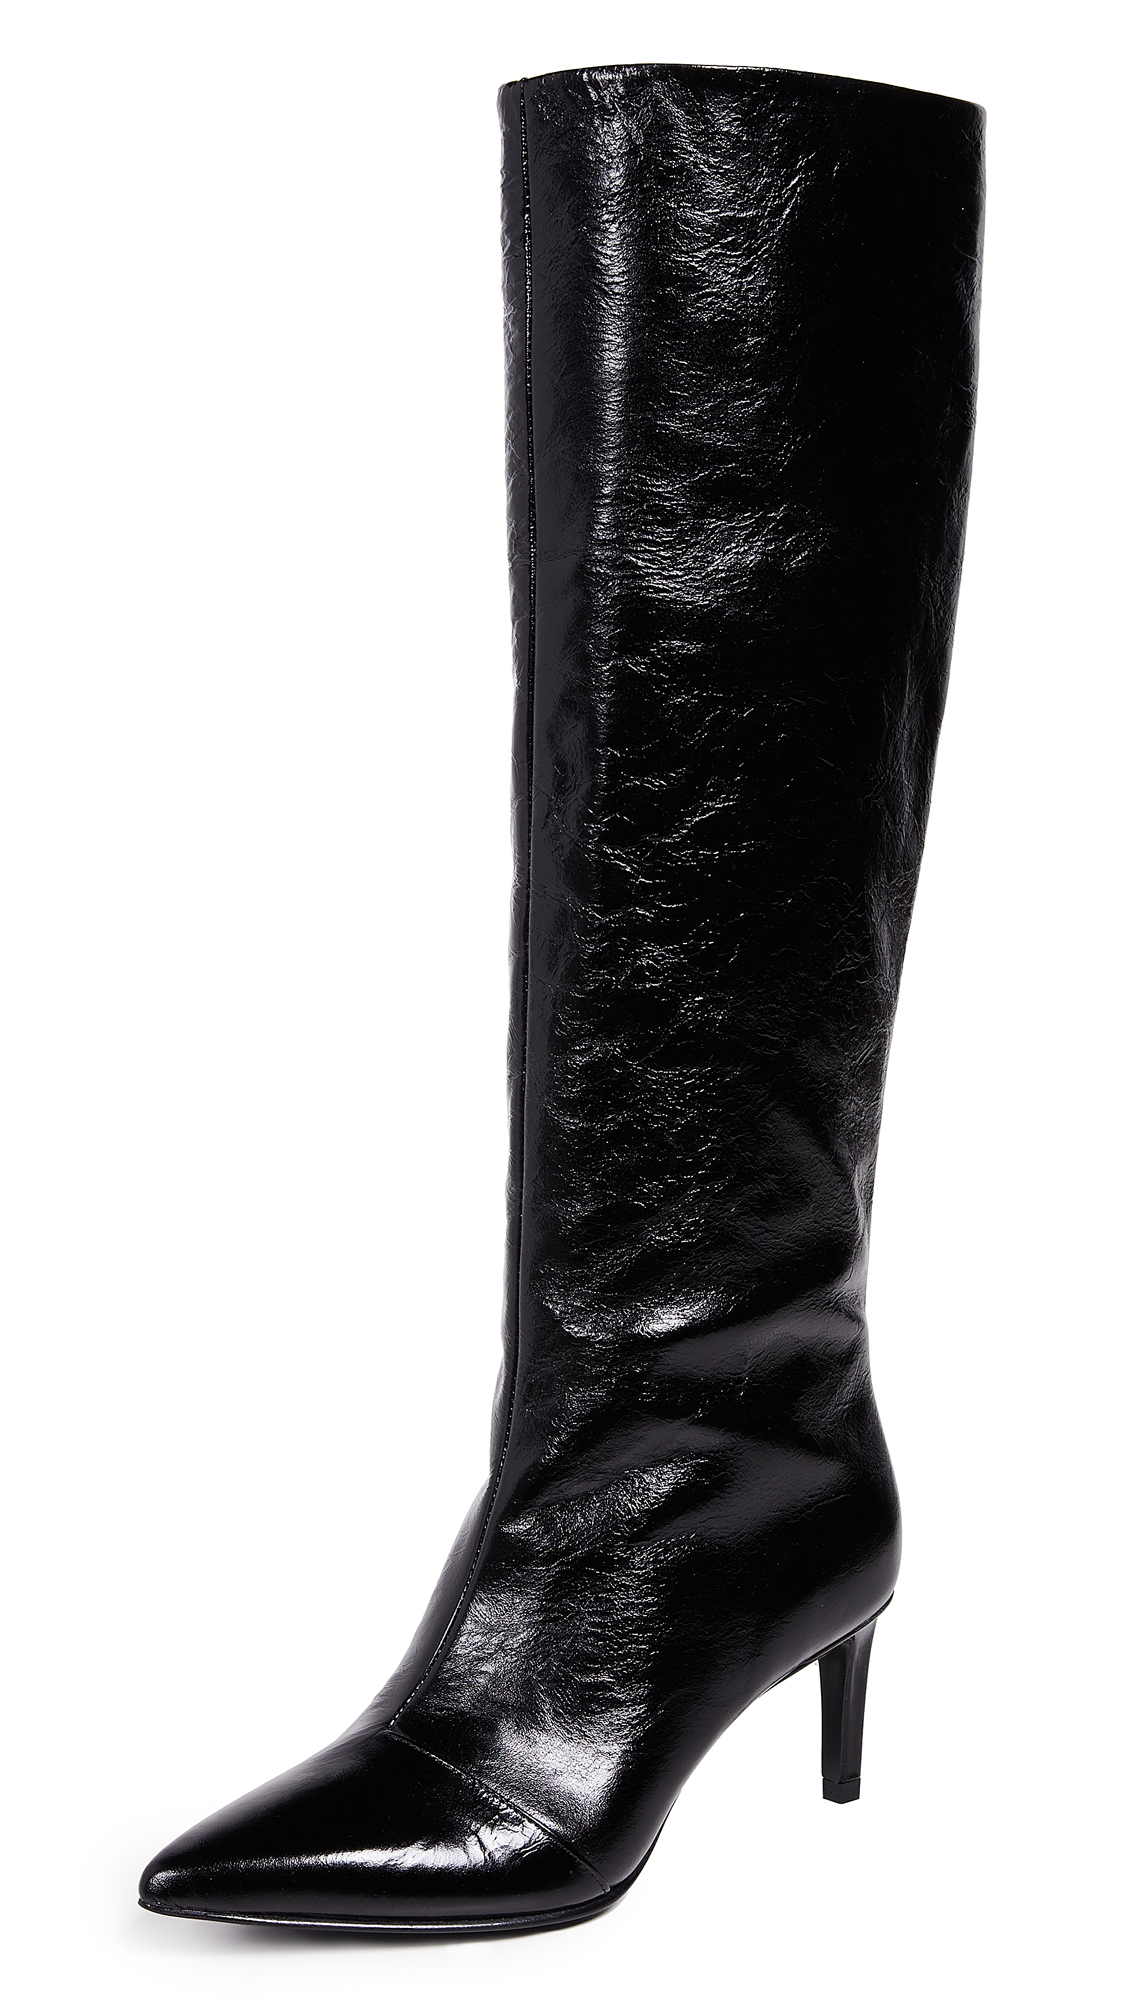 Rag & Bone Beha Knee High Boots - Black